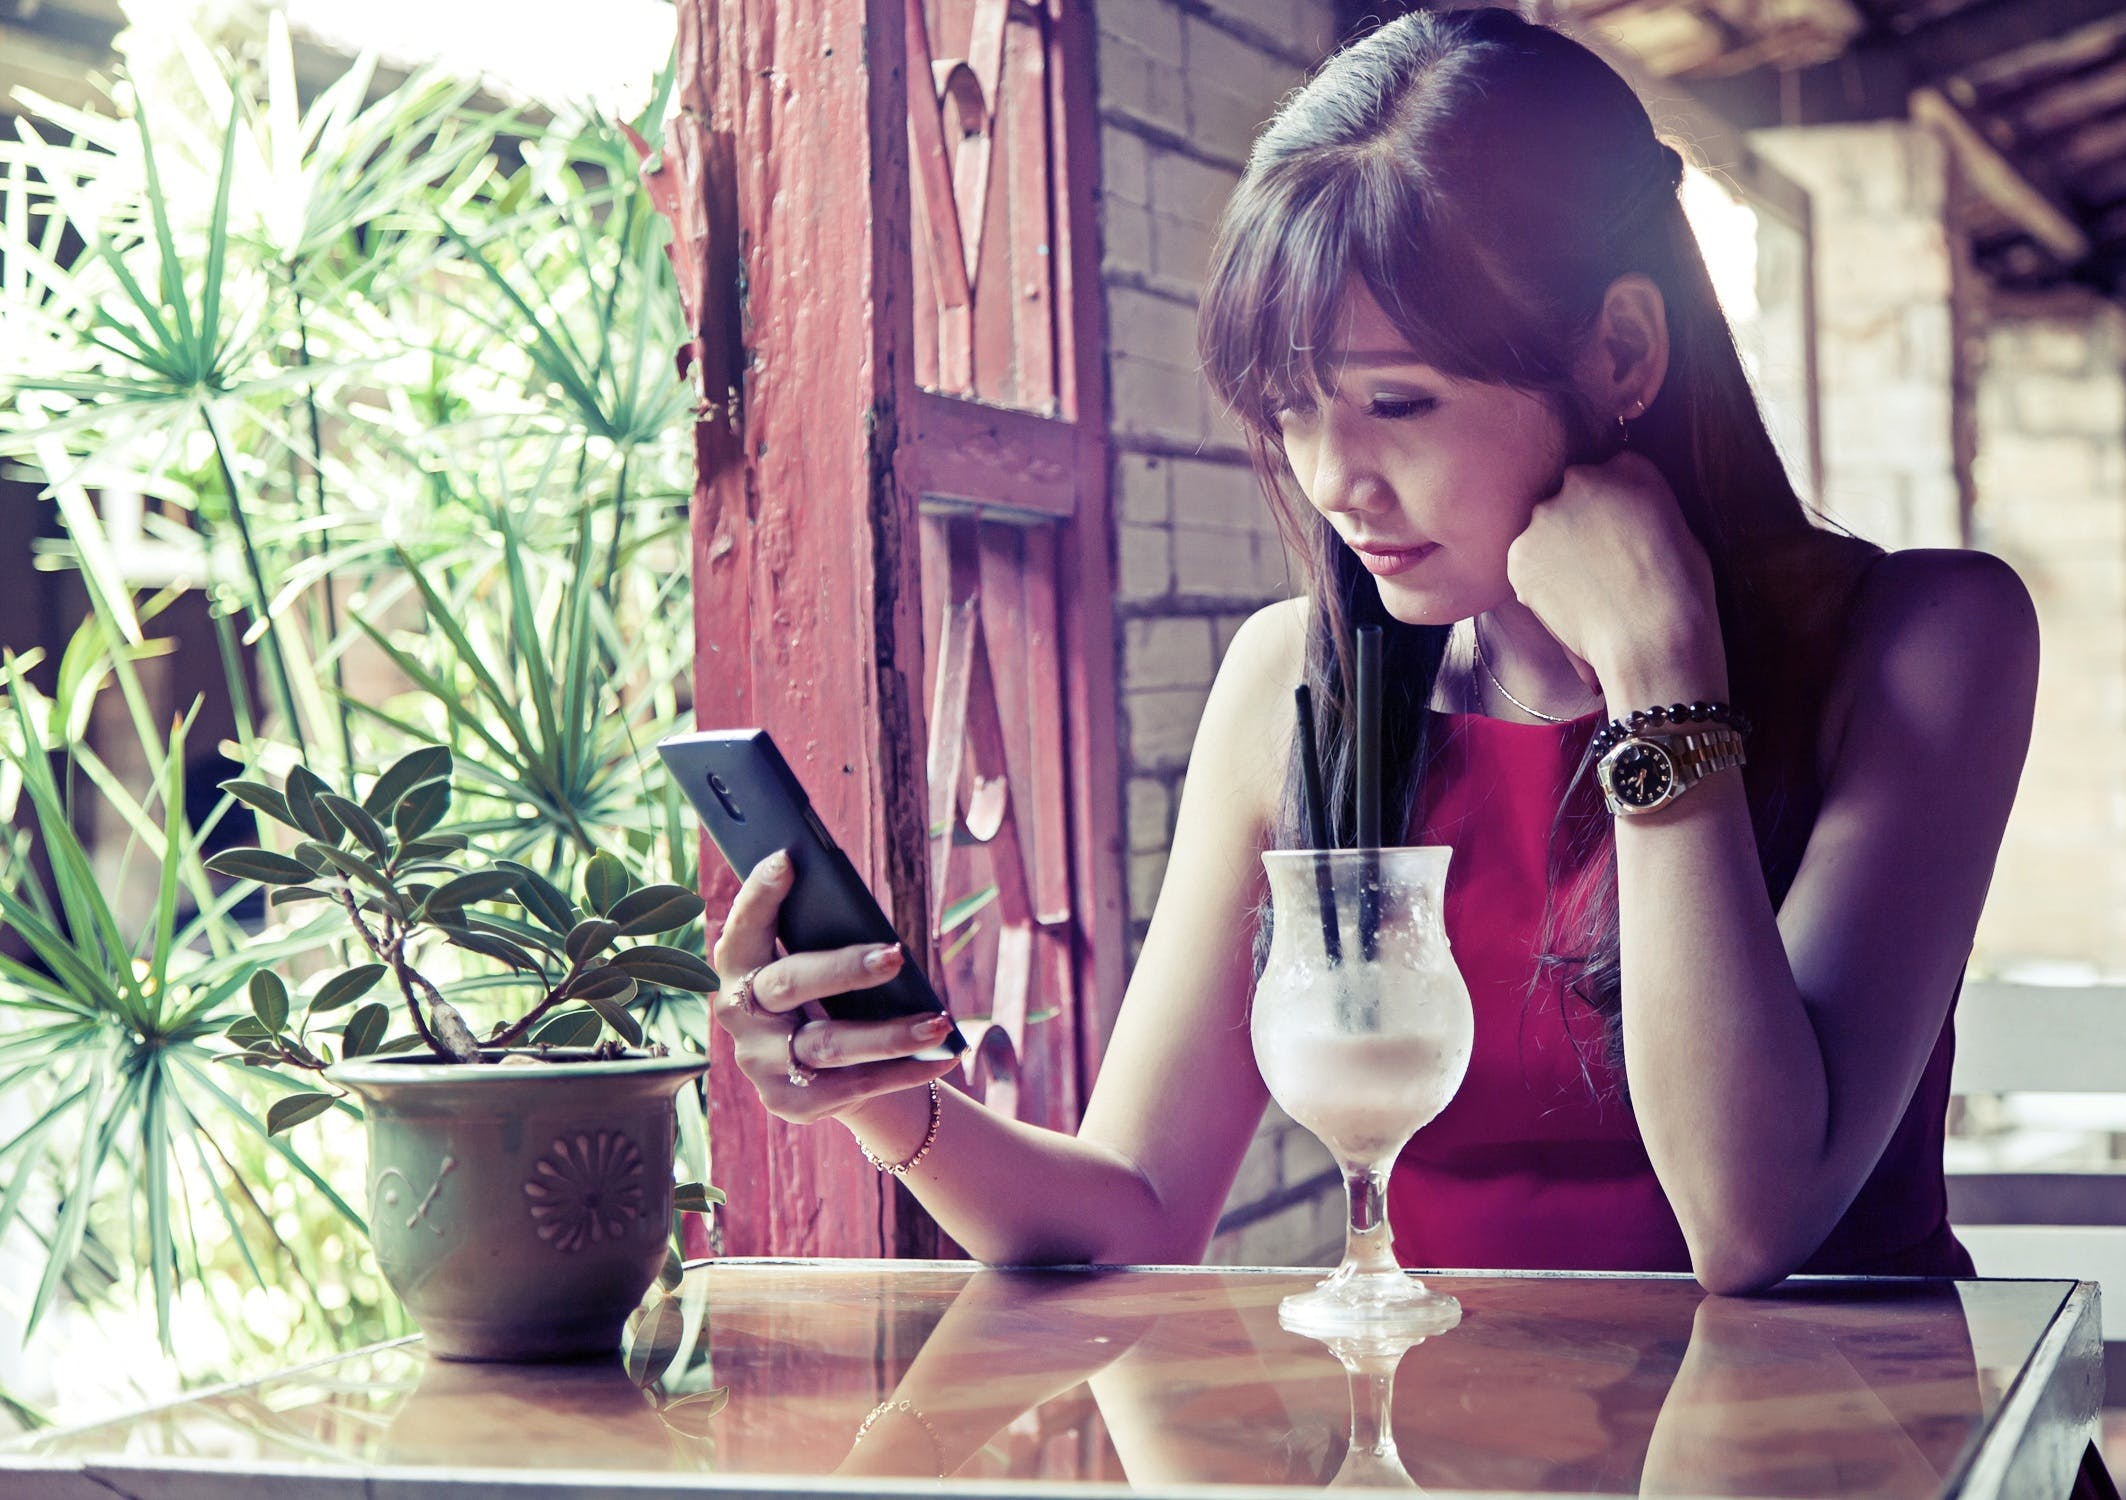 Woman Sitting on Square Brown Table Holding Phone